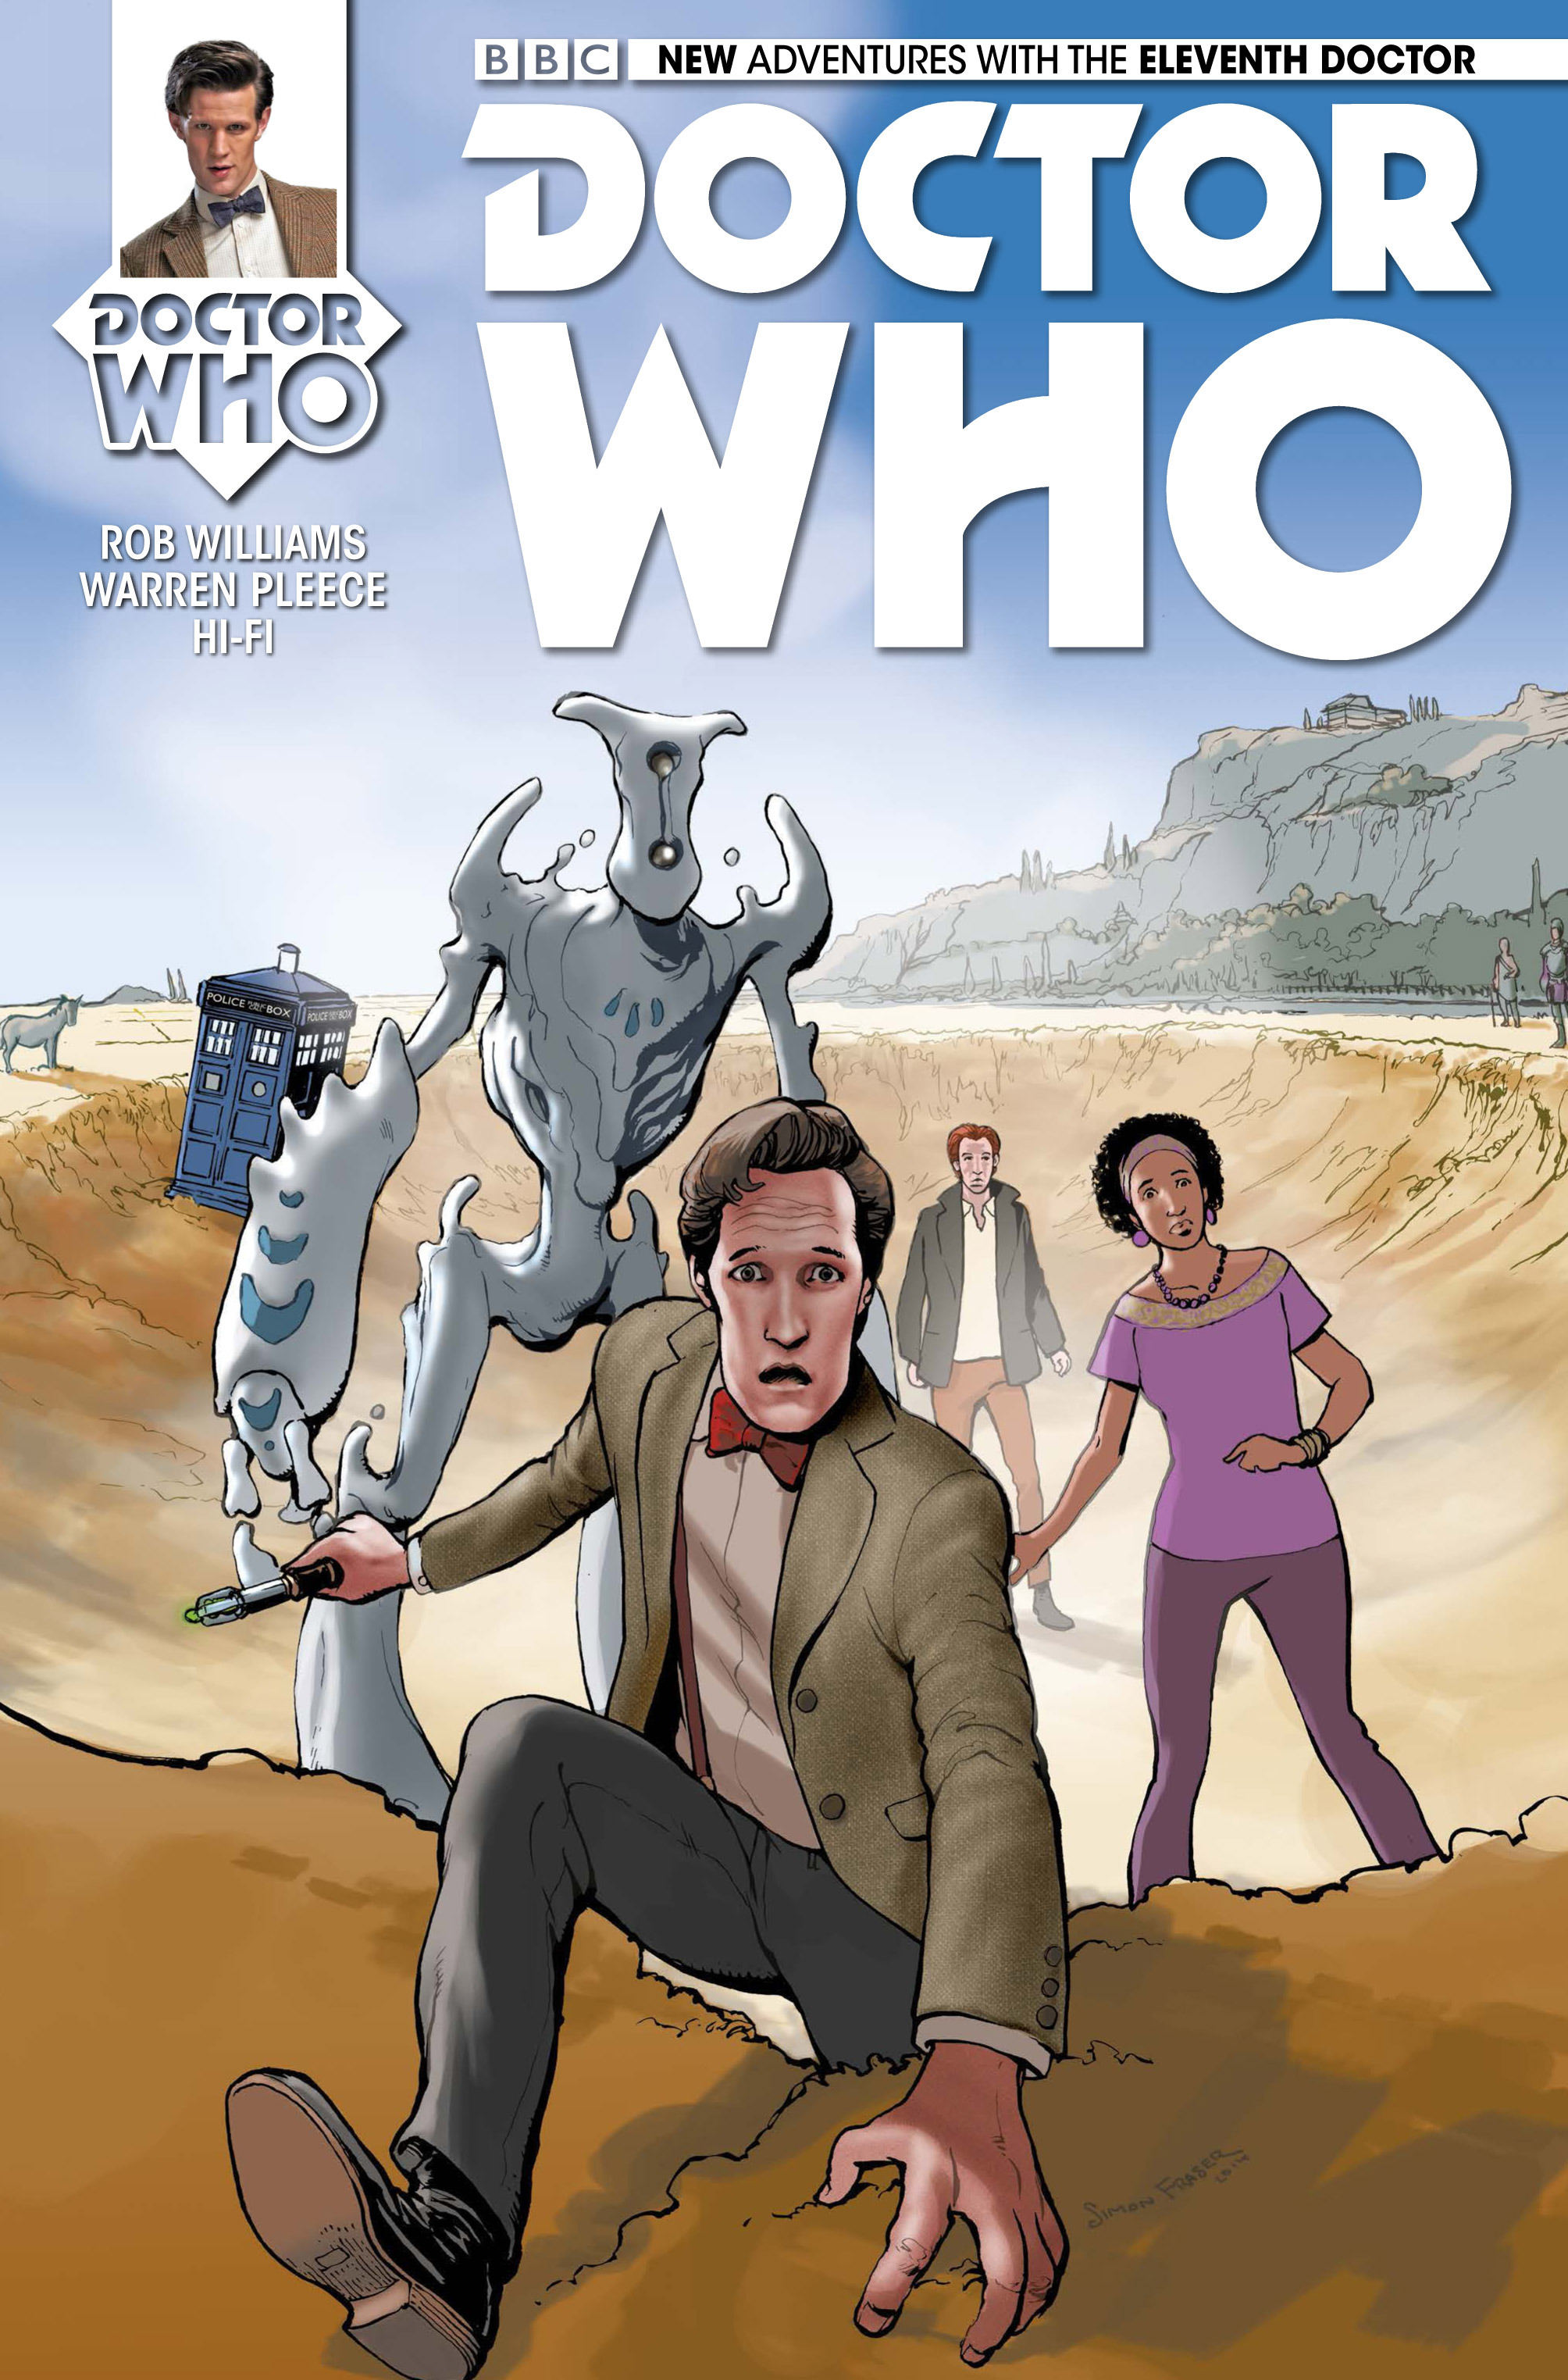 Doctor Who: The Eleventh Doctor 12 Page 1